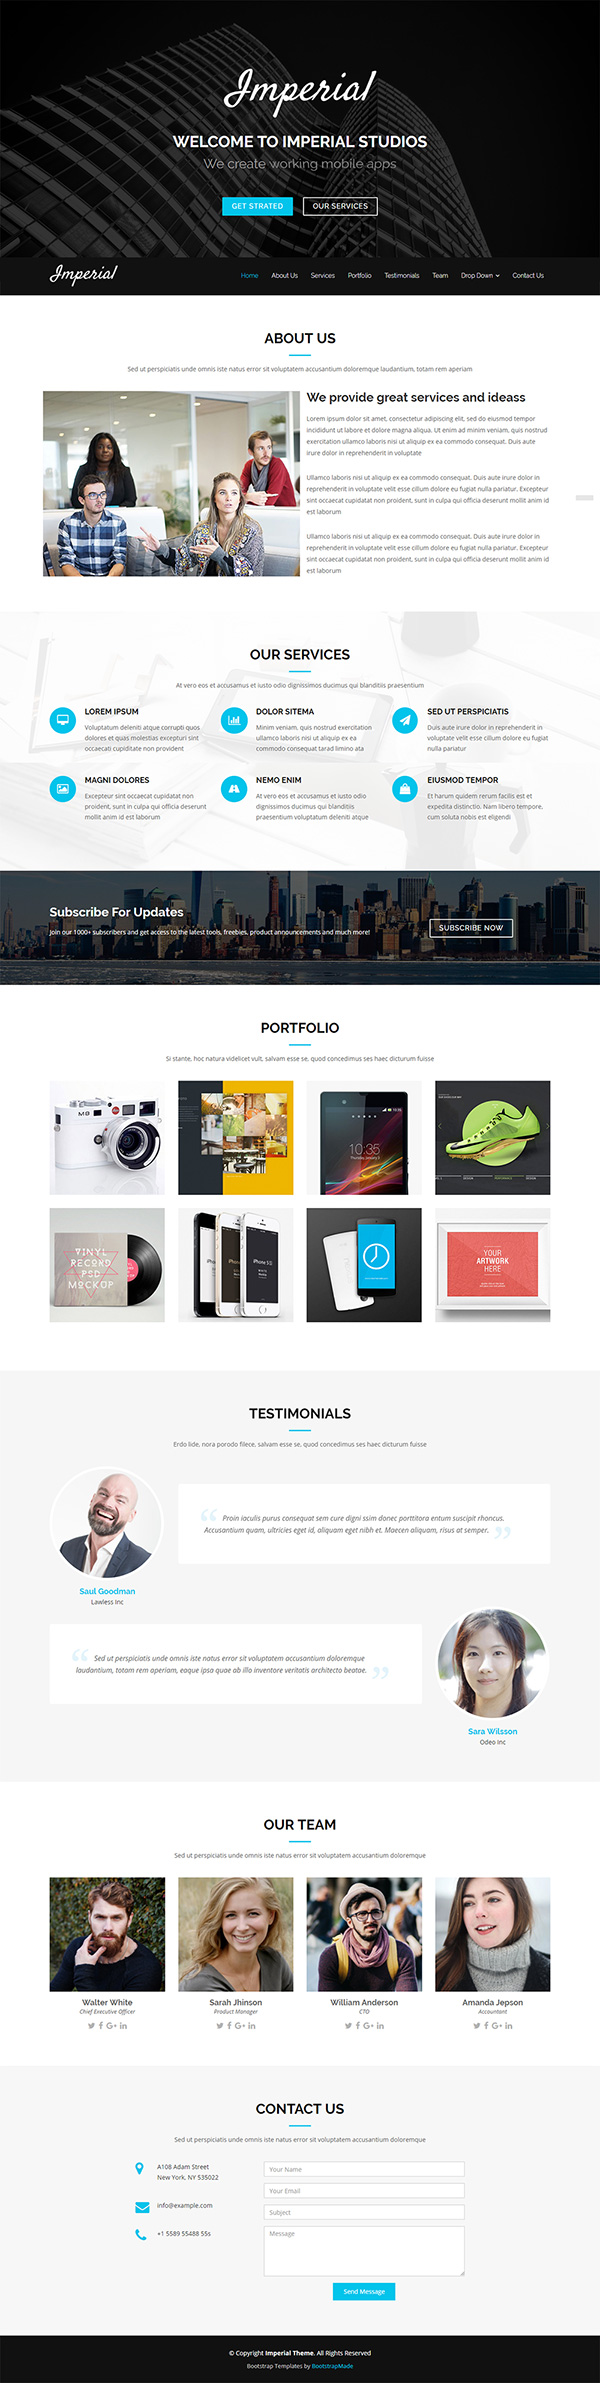 51+ Free Bootstrap Themes & Templates | Design agency, Header and ...